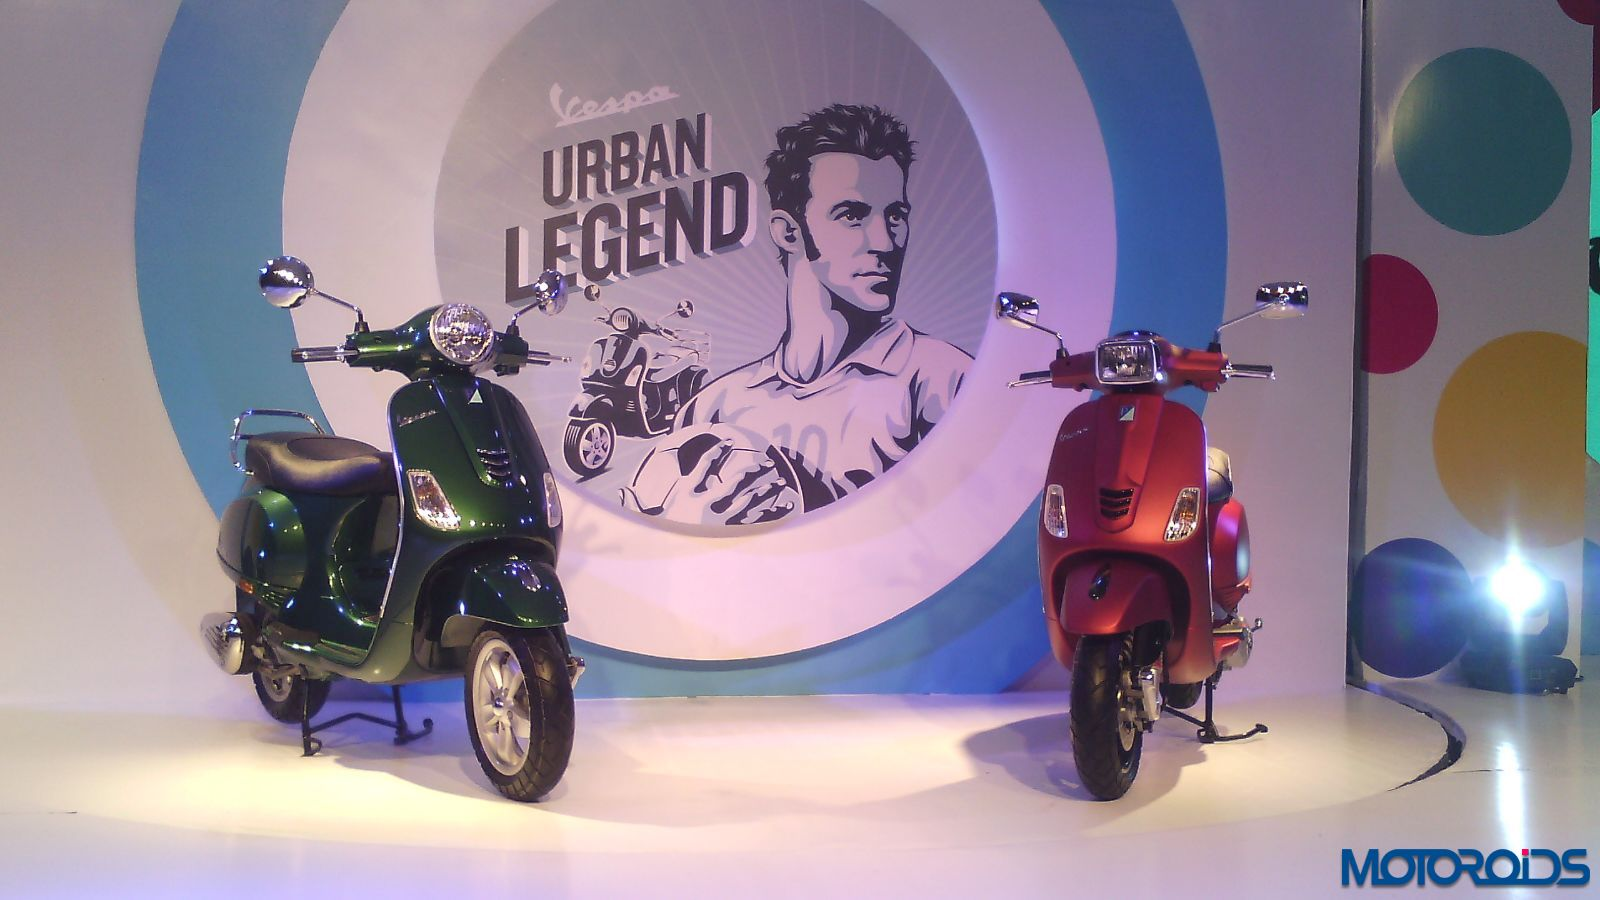 Piaggio launches its new range of SXL and VXL Vespa scooters